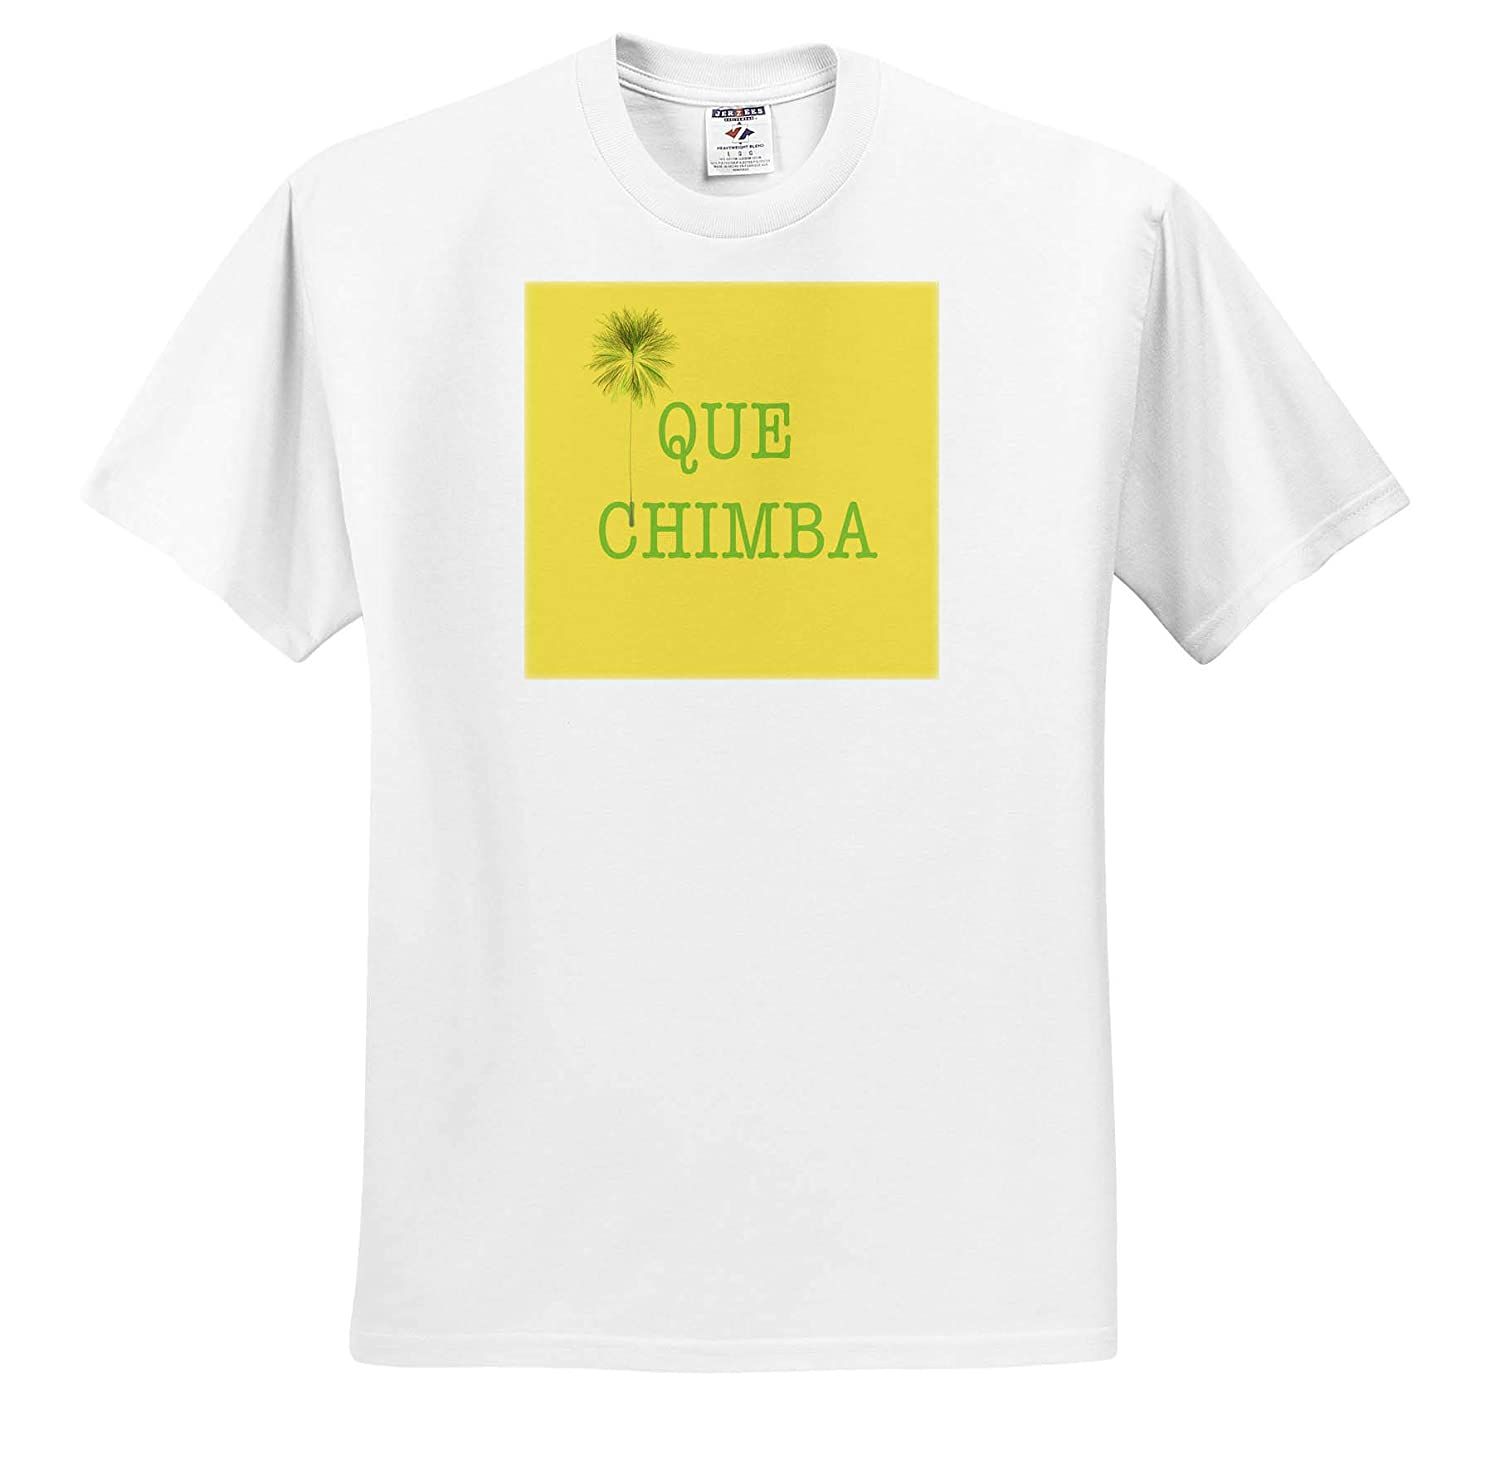 3dRose Kike Calvo Colombia Folklore and Traditions Green Que Chimba with Palm Tree on Yellow Background T-Shirts